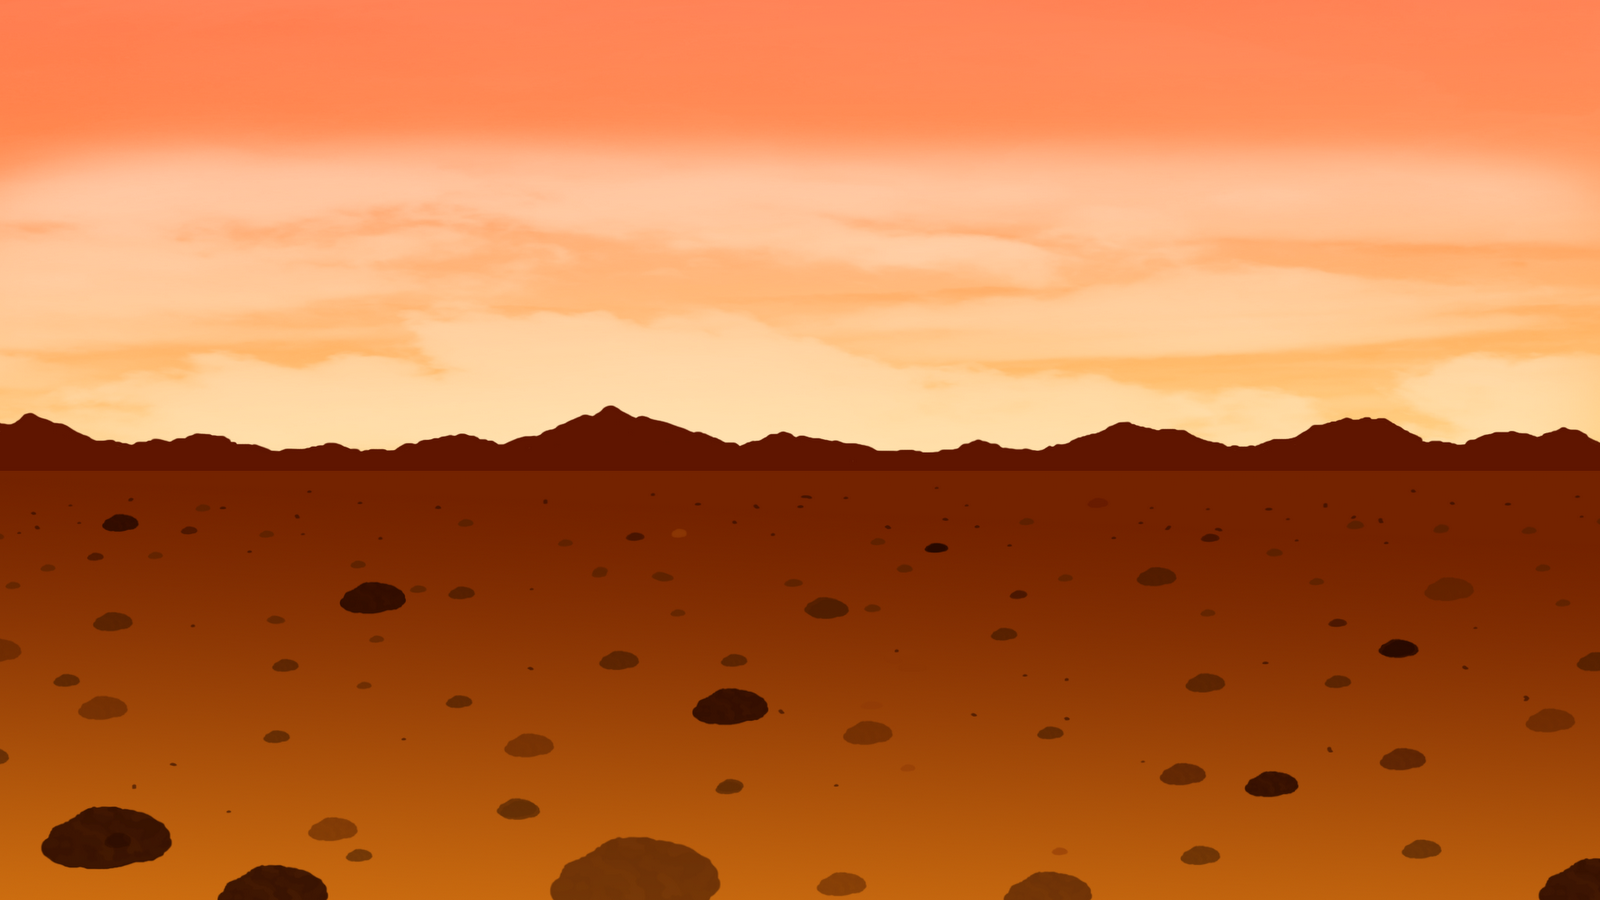 Mars clipart surface Used rocks texture matte surface